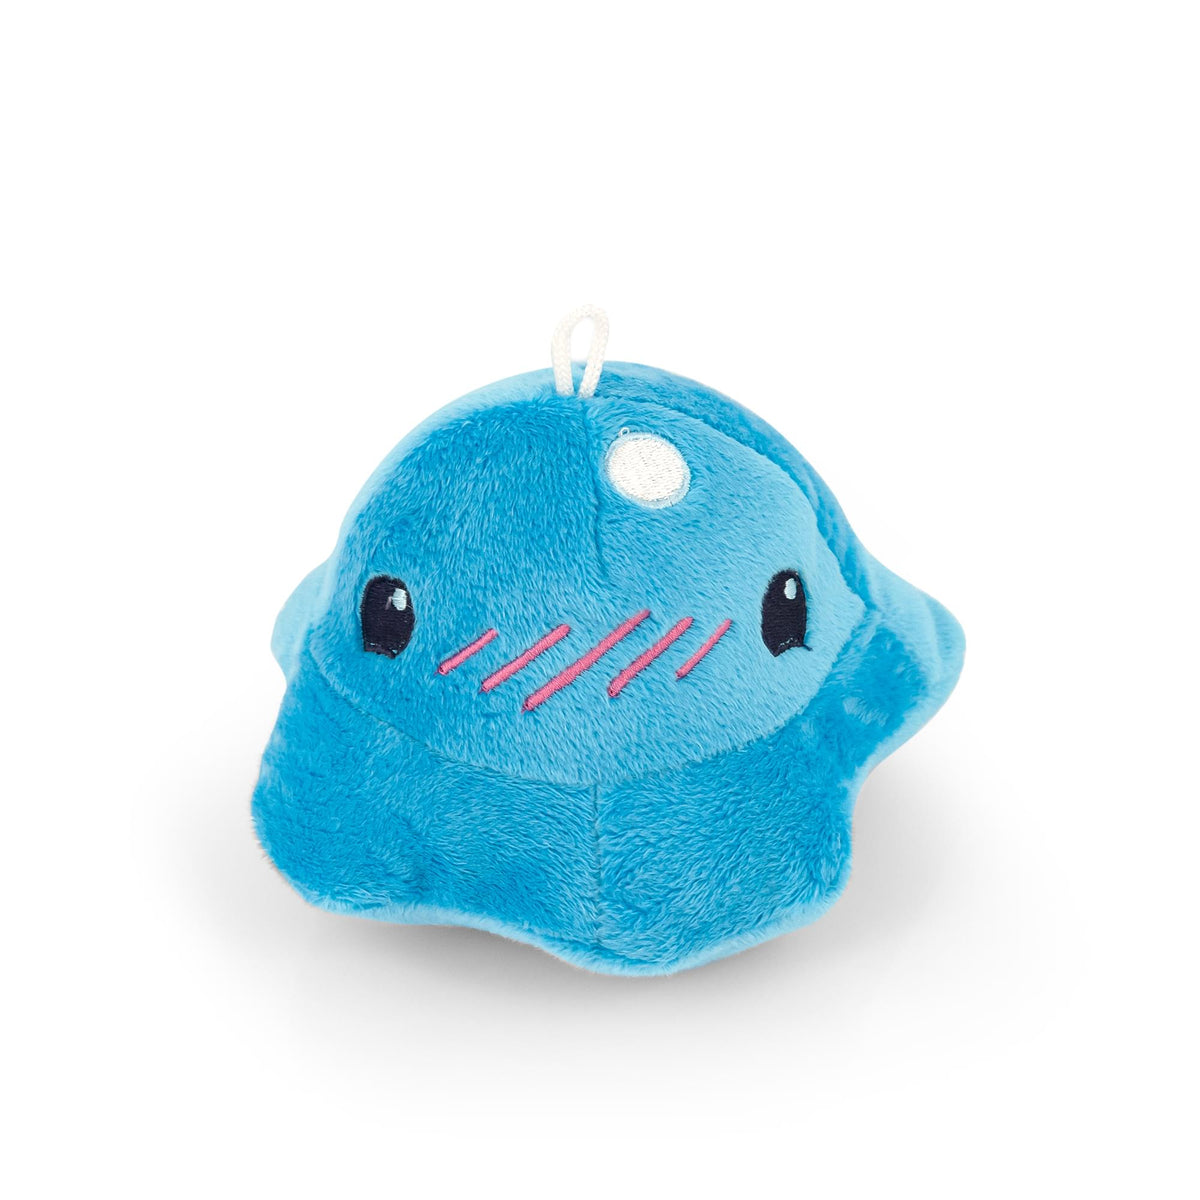 Slime Rancher Puddle Slime Plush Collectible | Soft Plush Doll | 4-Inch Tall